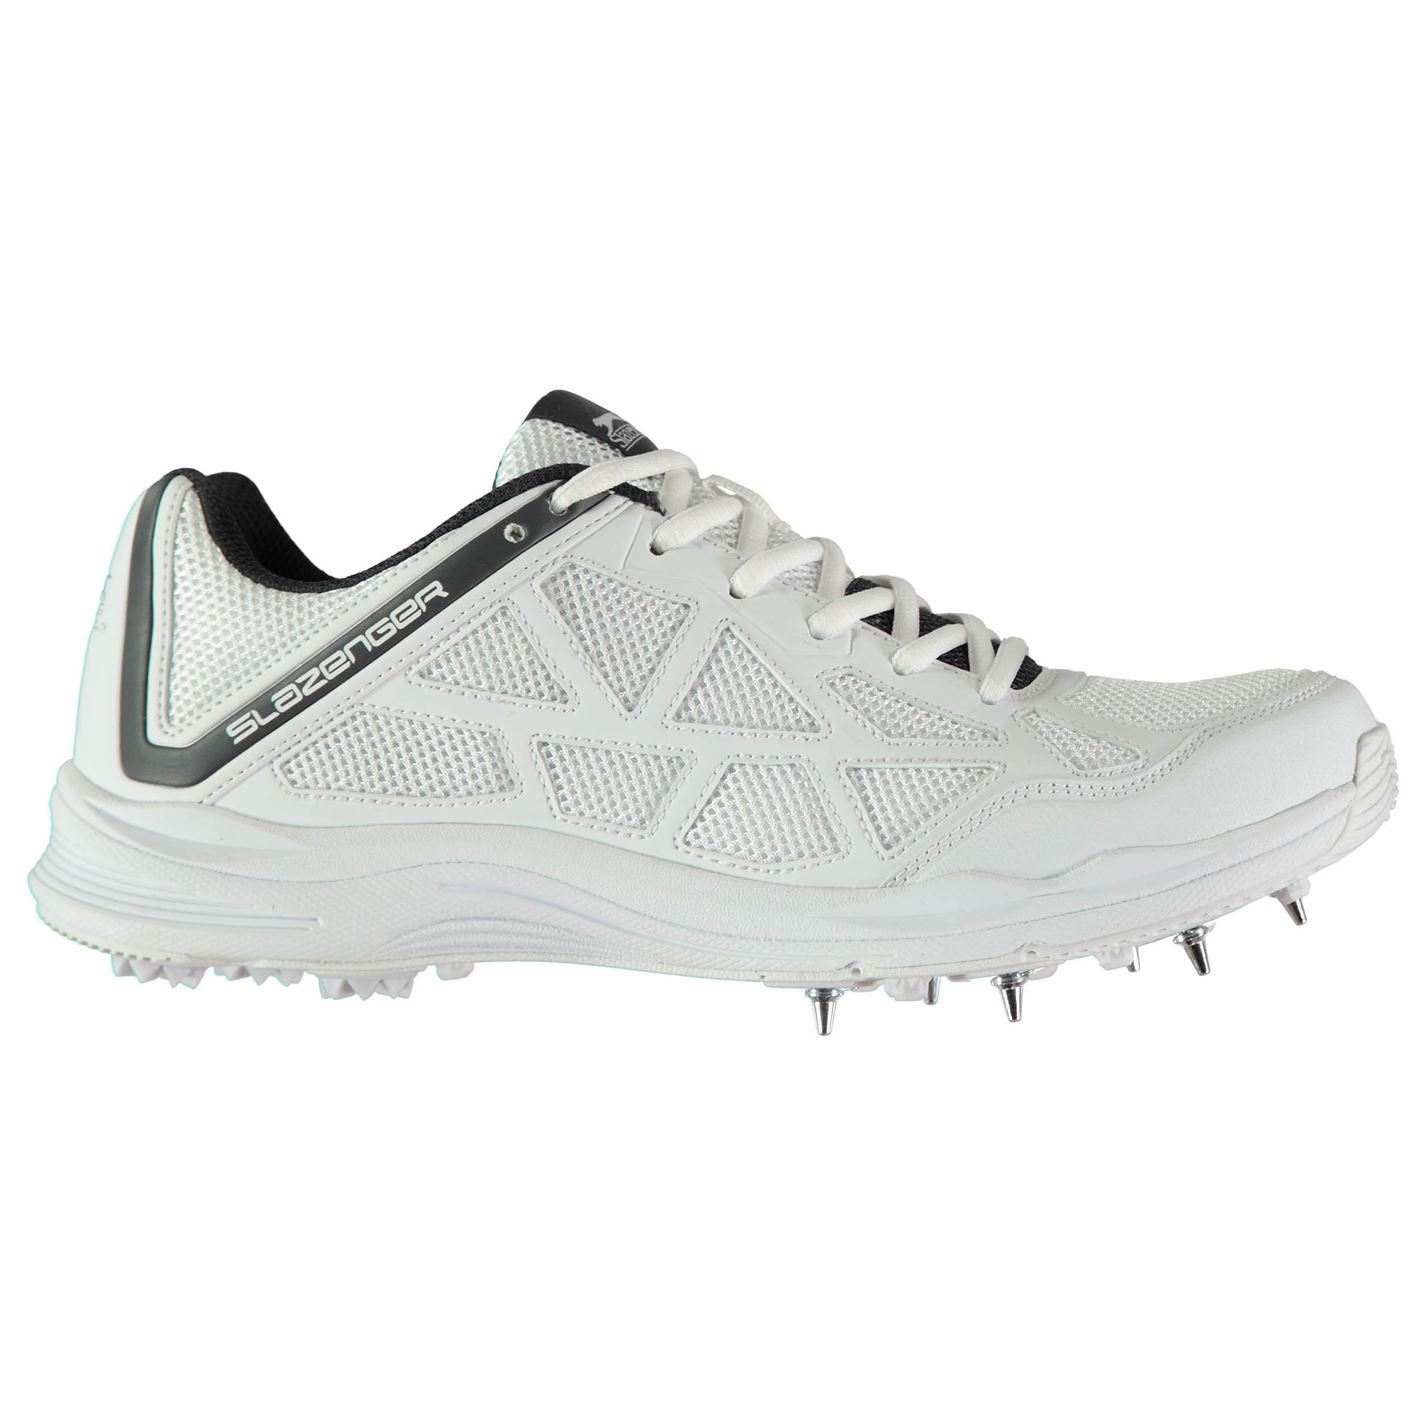 Kookaburra Rampage 500 Cricket Shoes Mens Gents Spikes Laces Fastened Mesh Upper